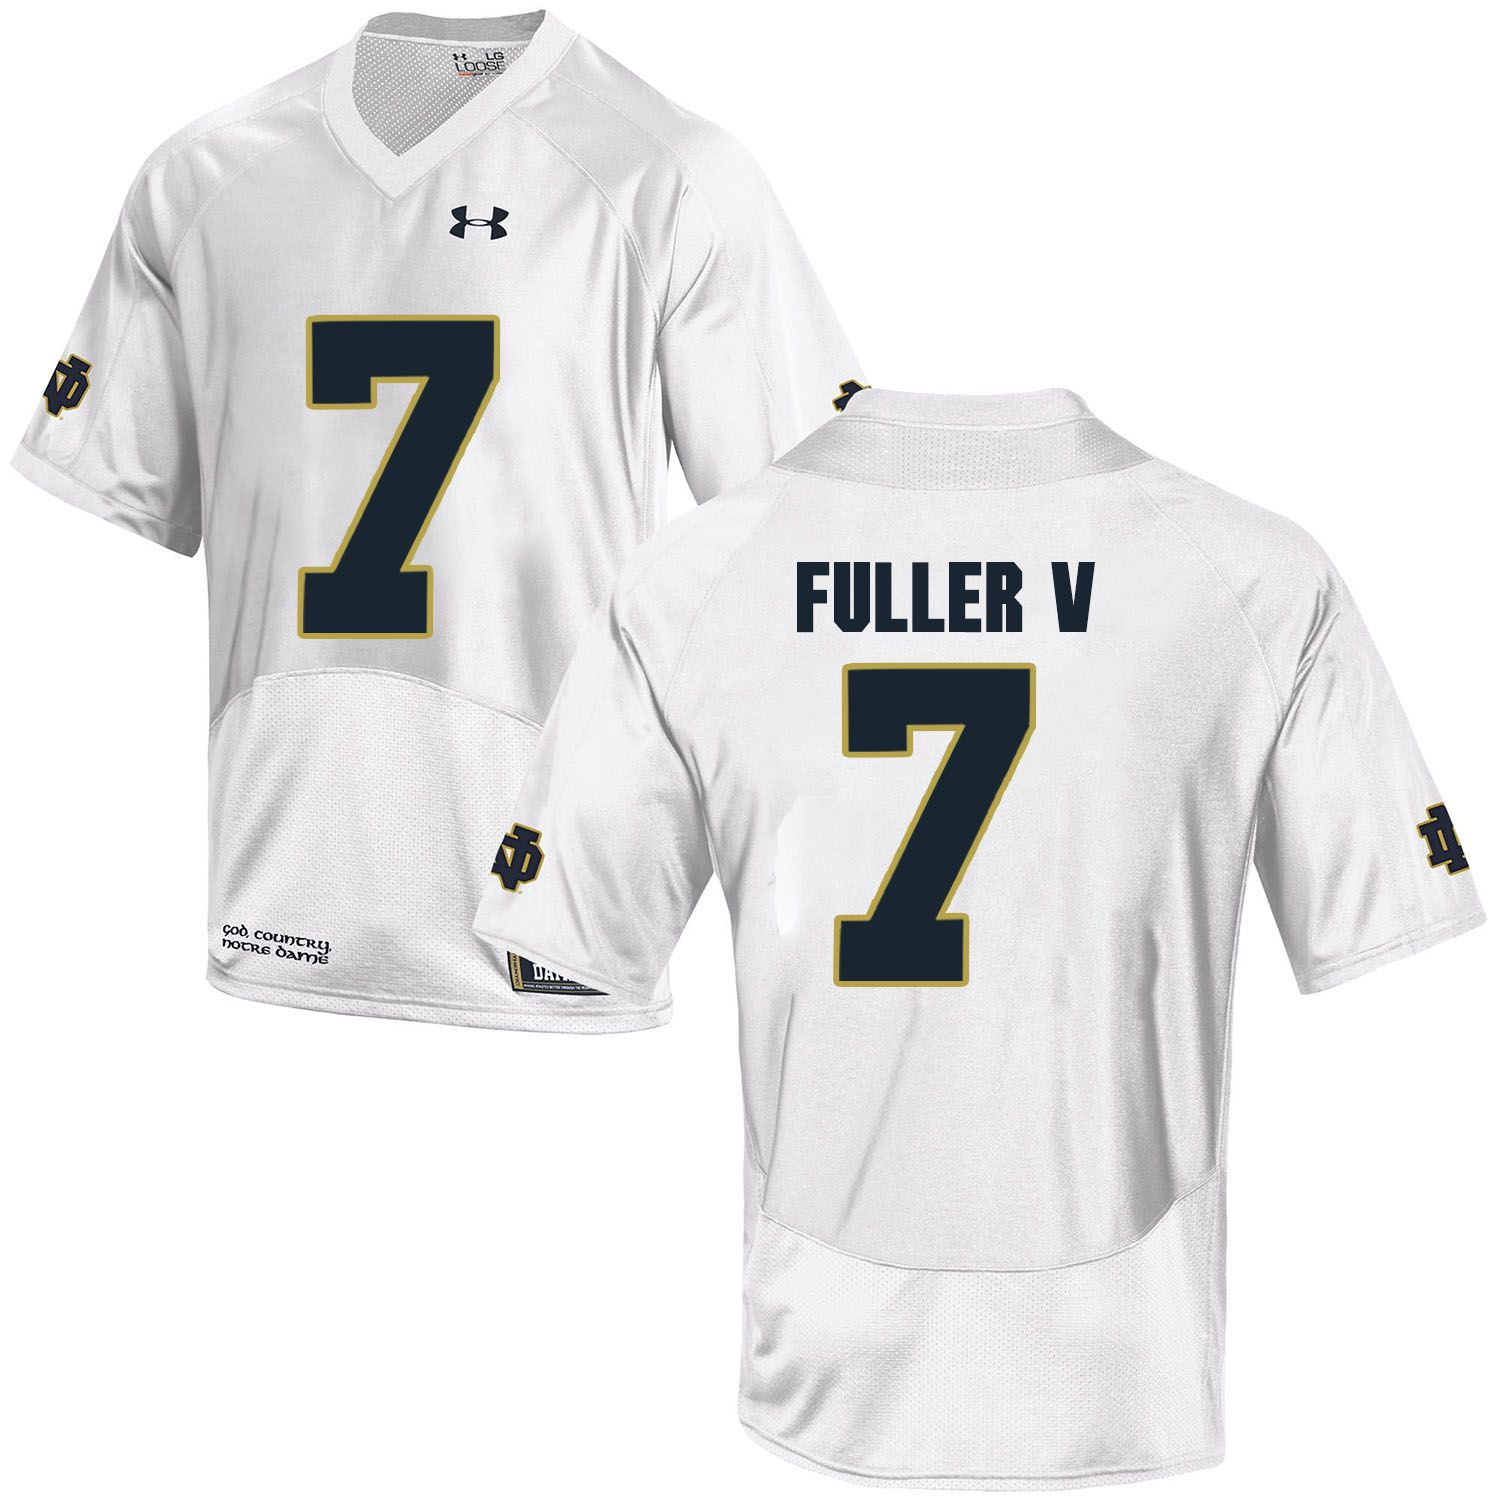 Men Norte Dame Fighting Irish 7 Fuller v White Customized NCAA Jerseys